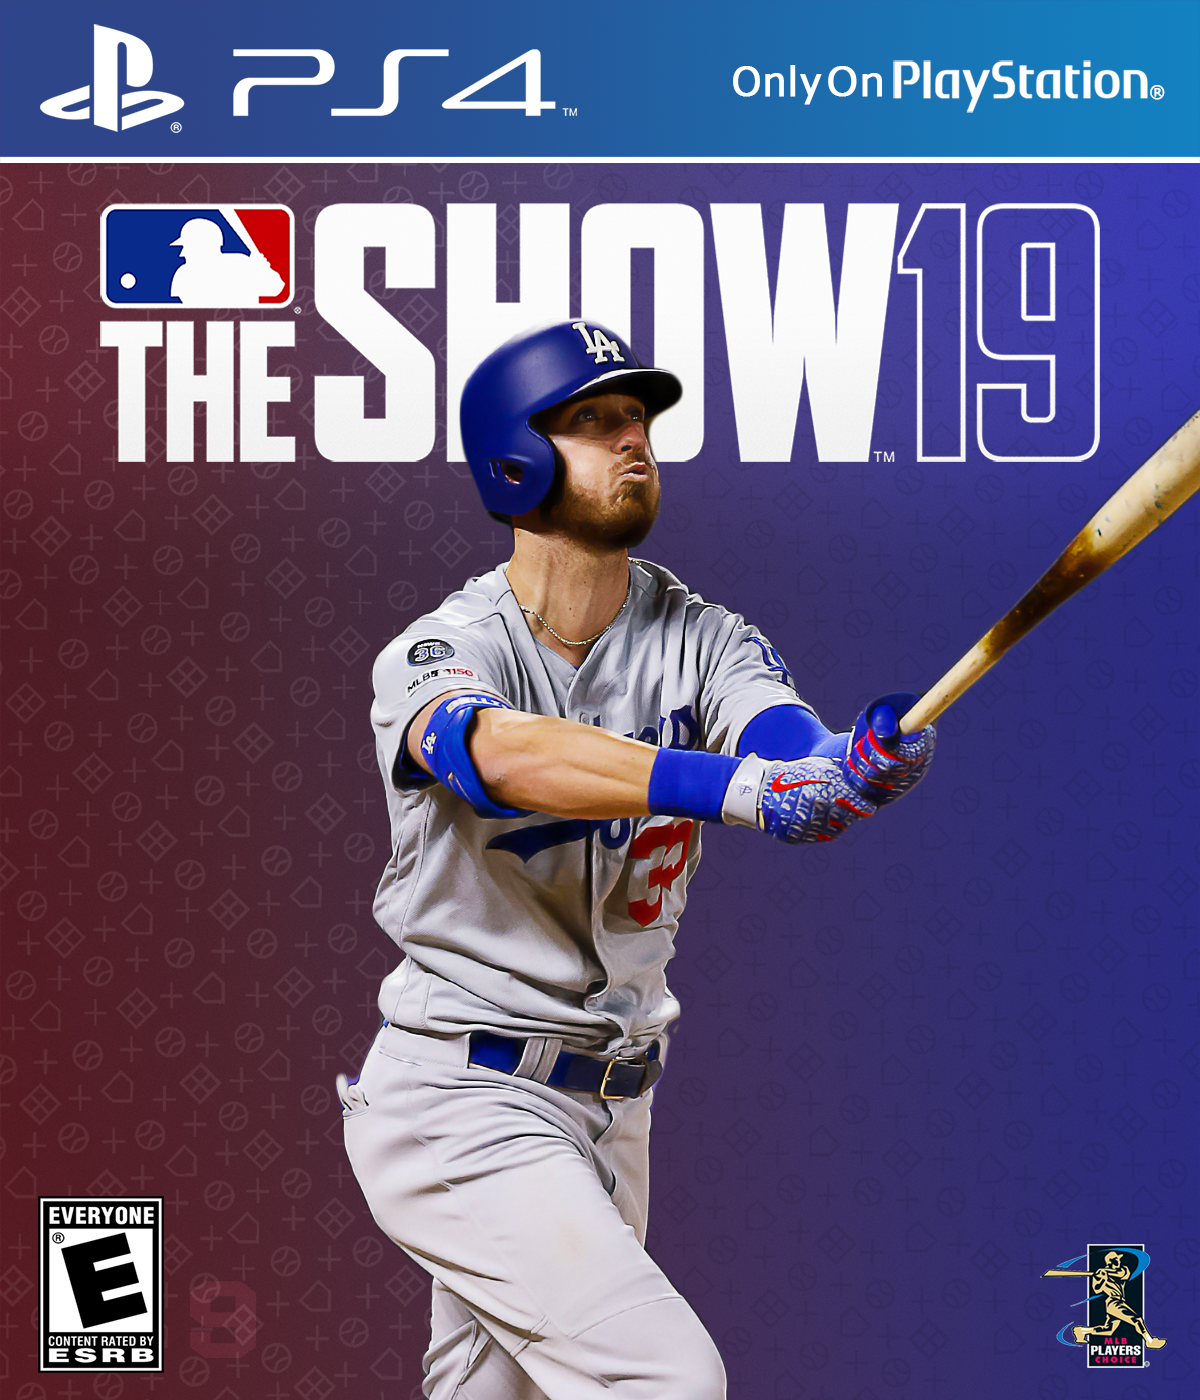 Mlb The Show 19 Covers On Behance Mlb The Show Mlb Mlb Players